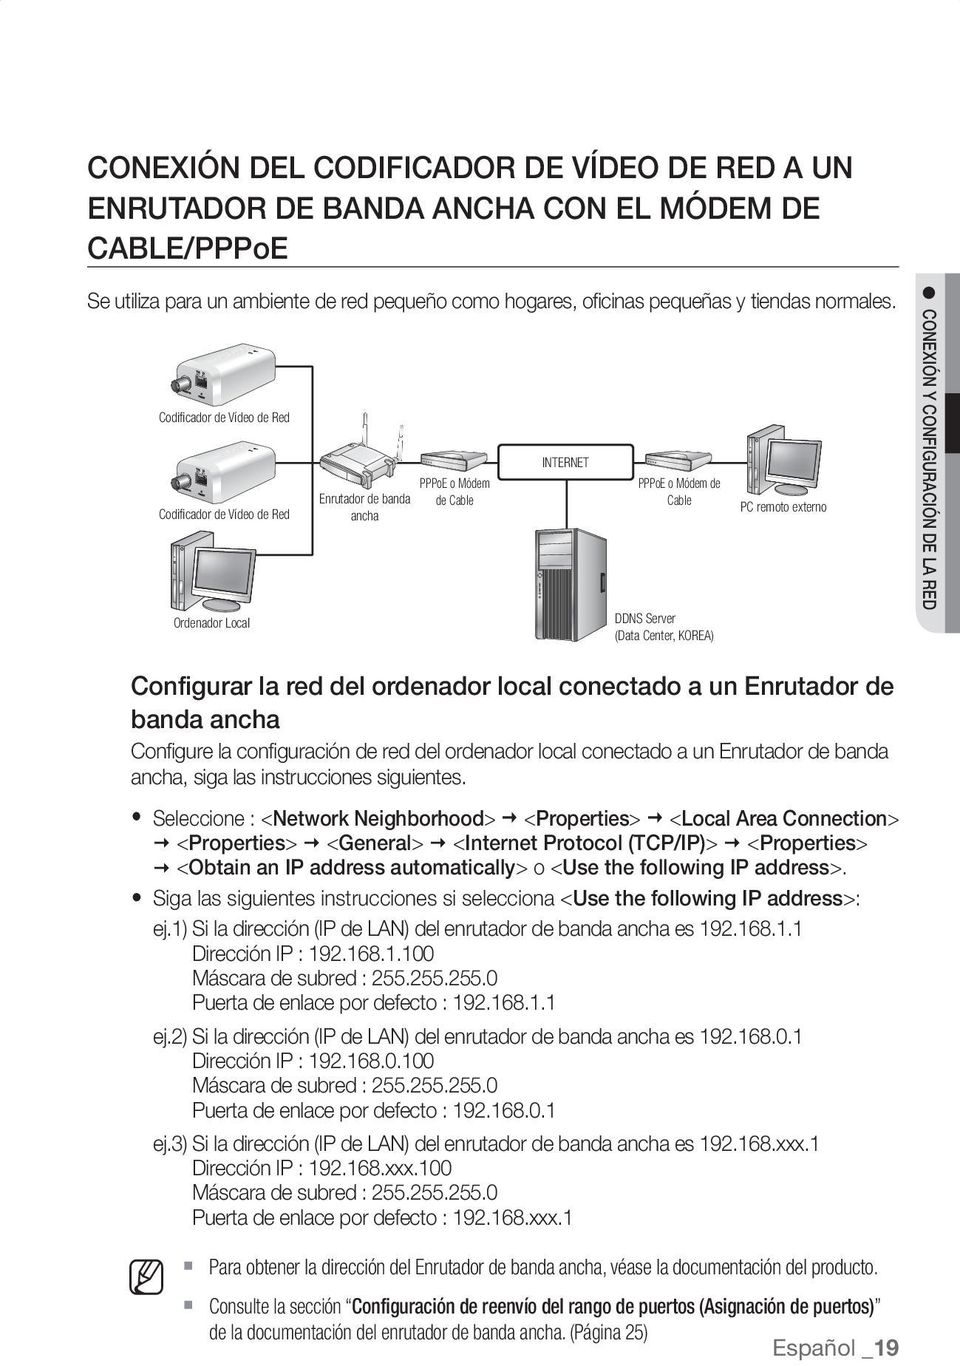 Codificador de Vídeo de Red Codificador de Vídeo de Red Ordenador Local Enrutador de banda ancha PPPoE o Módem de Cable INTERNET PPPoE o Módem de Cable DDNS Server (Data Center, KOREA) PC remoto